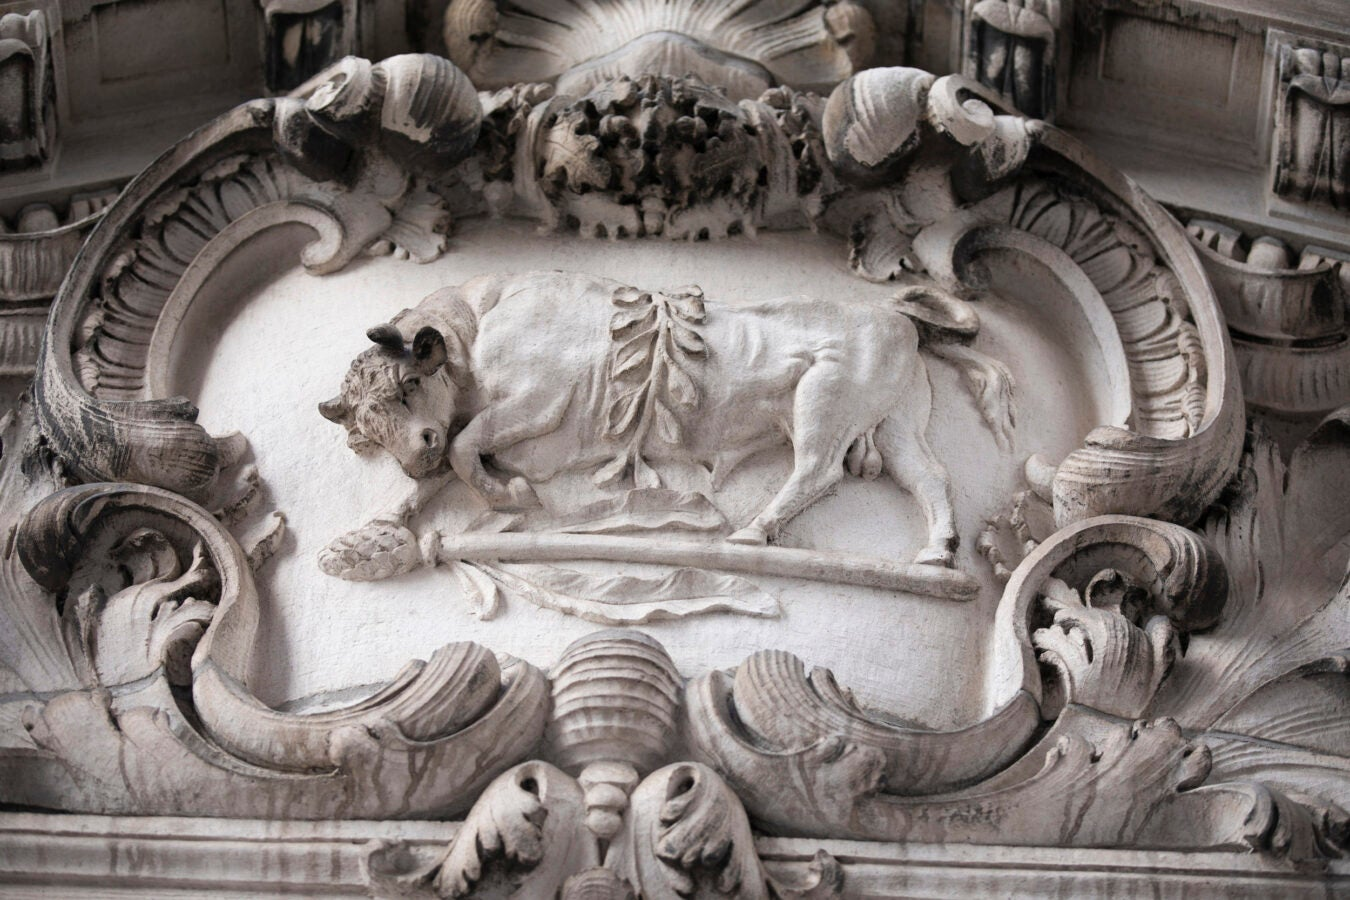 A bull is carved in marble.